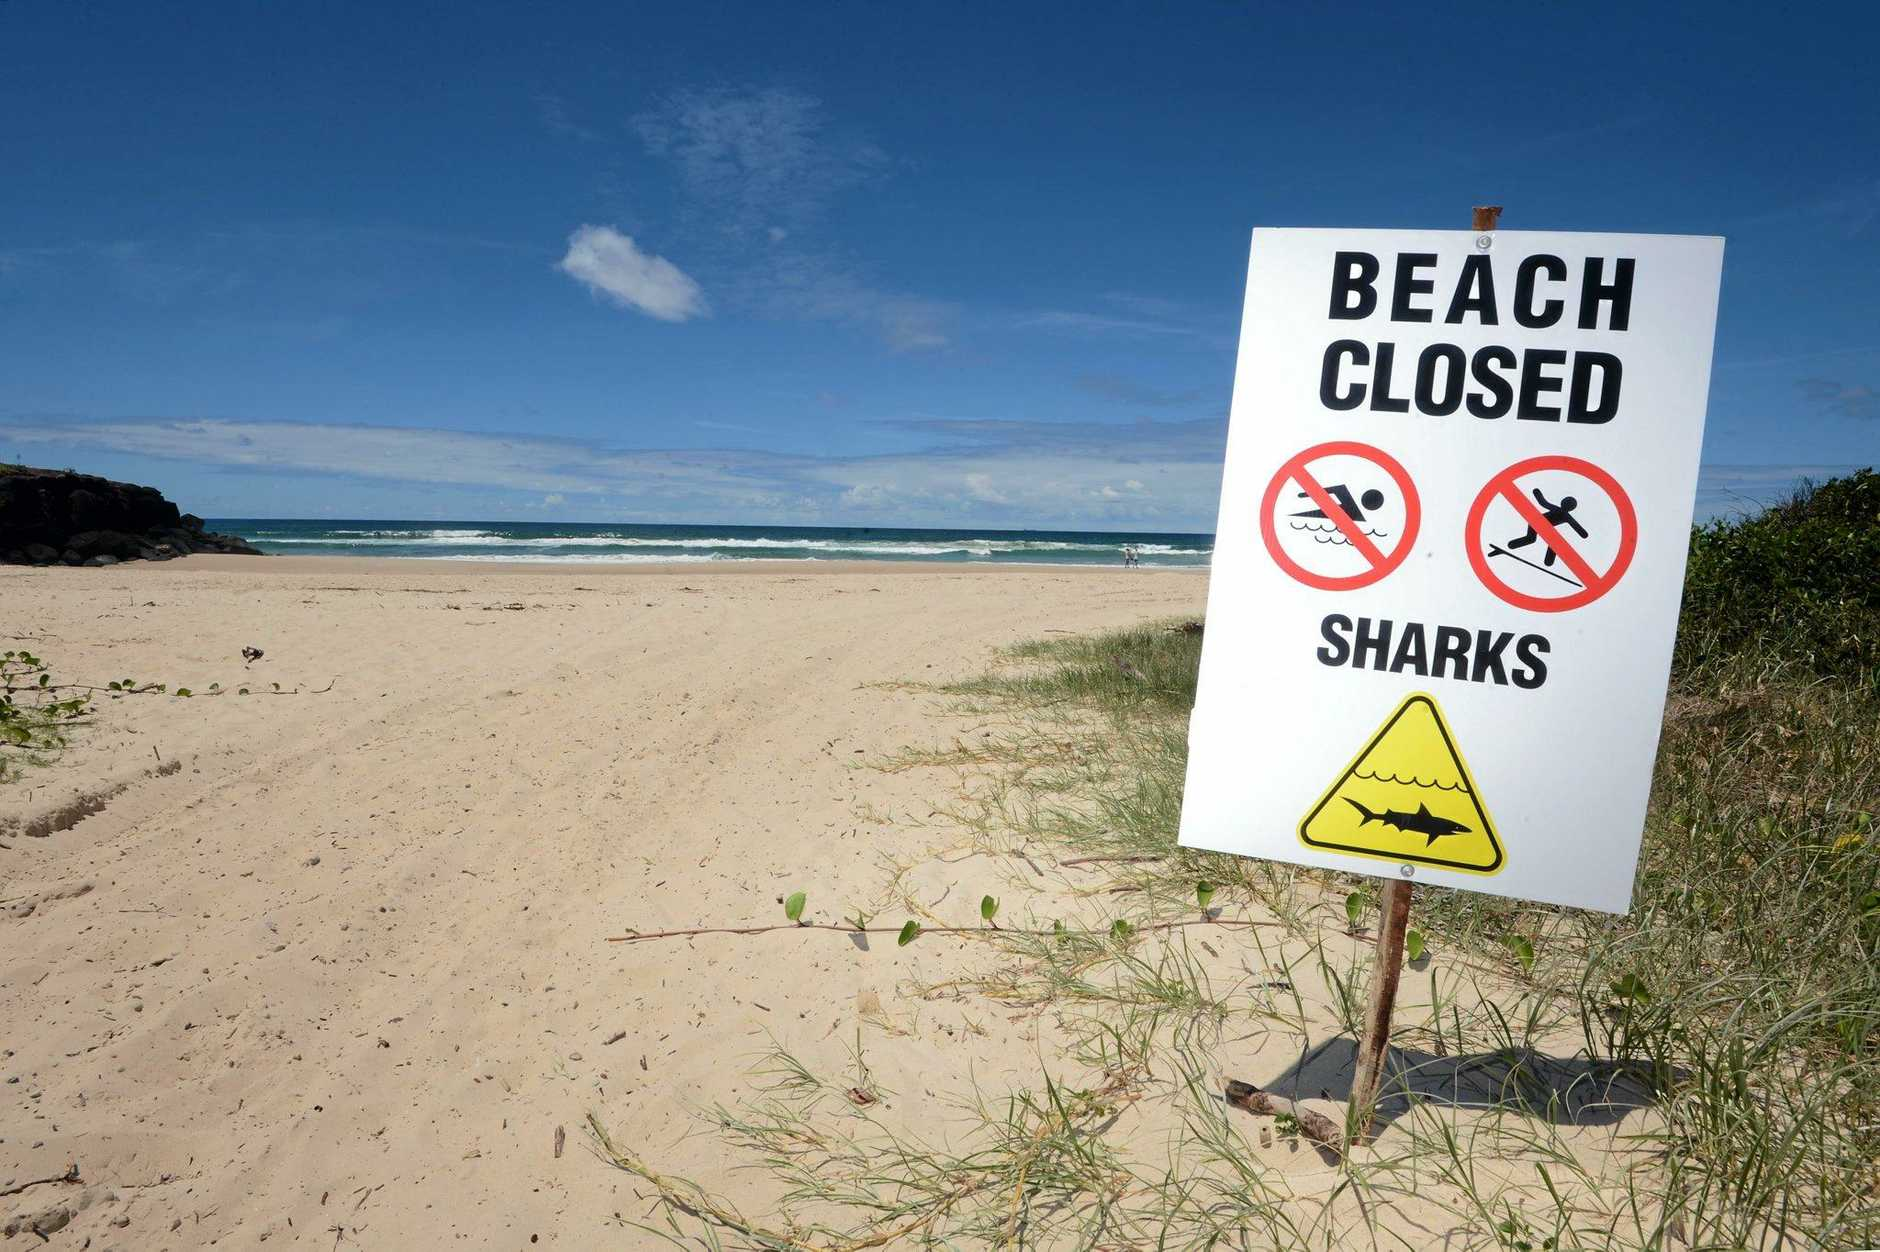 Lighthouse Beach at Ballina closed after a shark attack. Photo Cathy Adams / The Northern Star